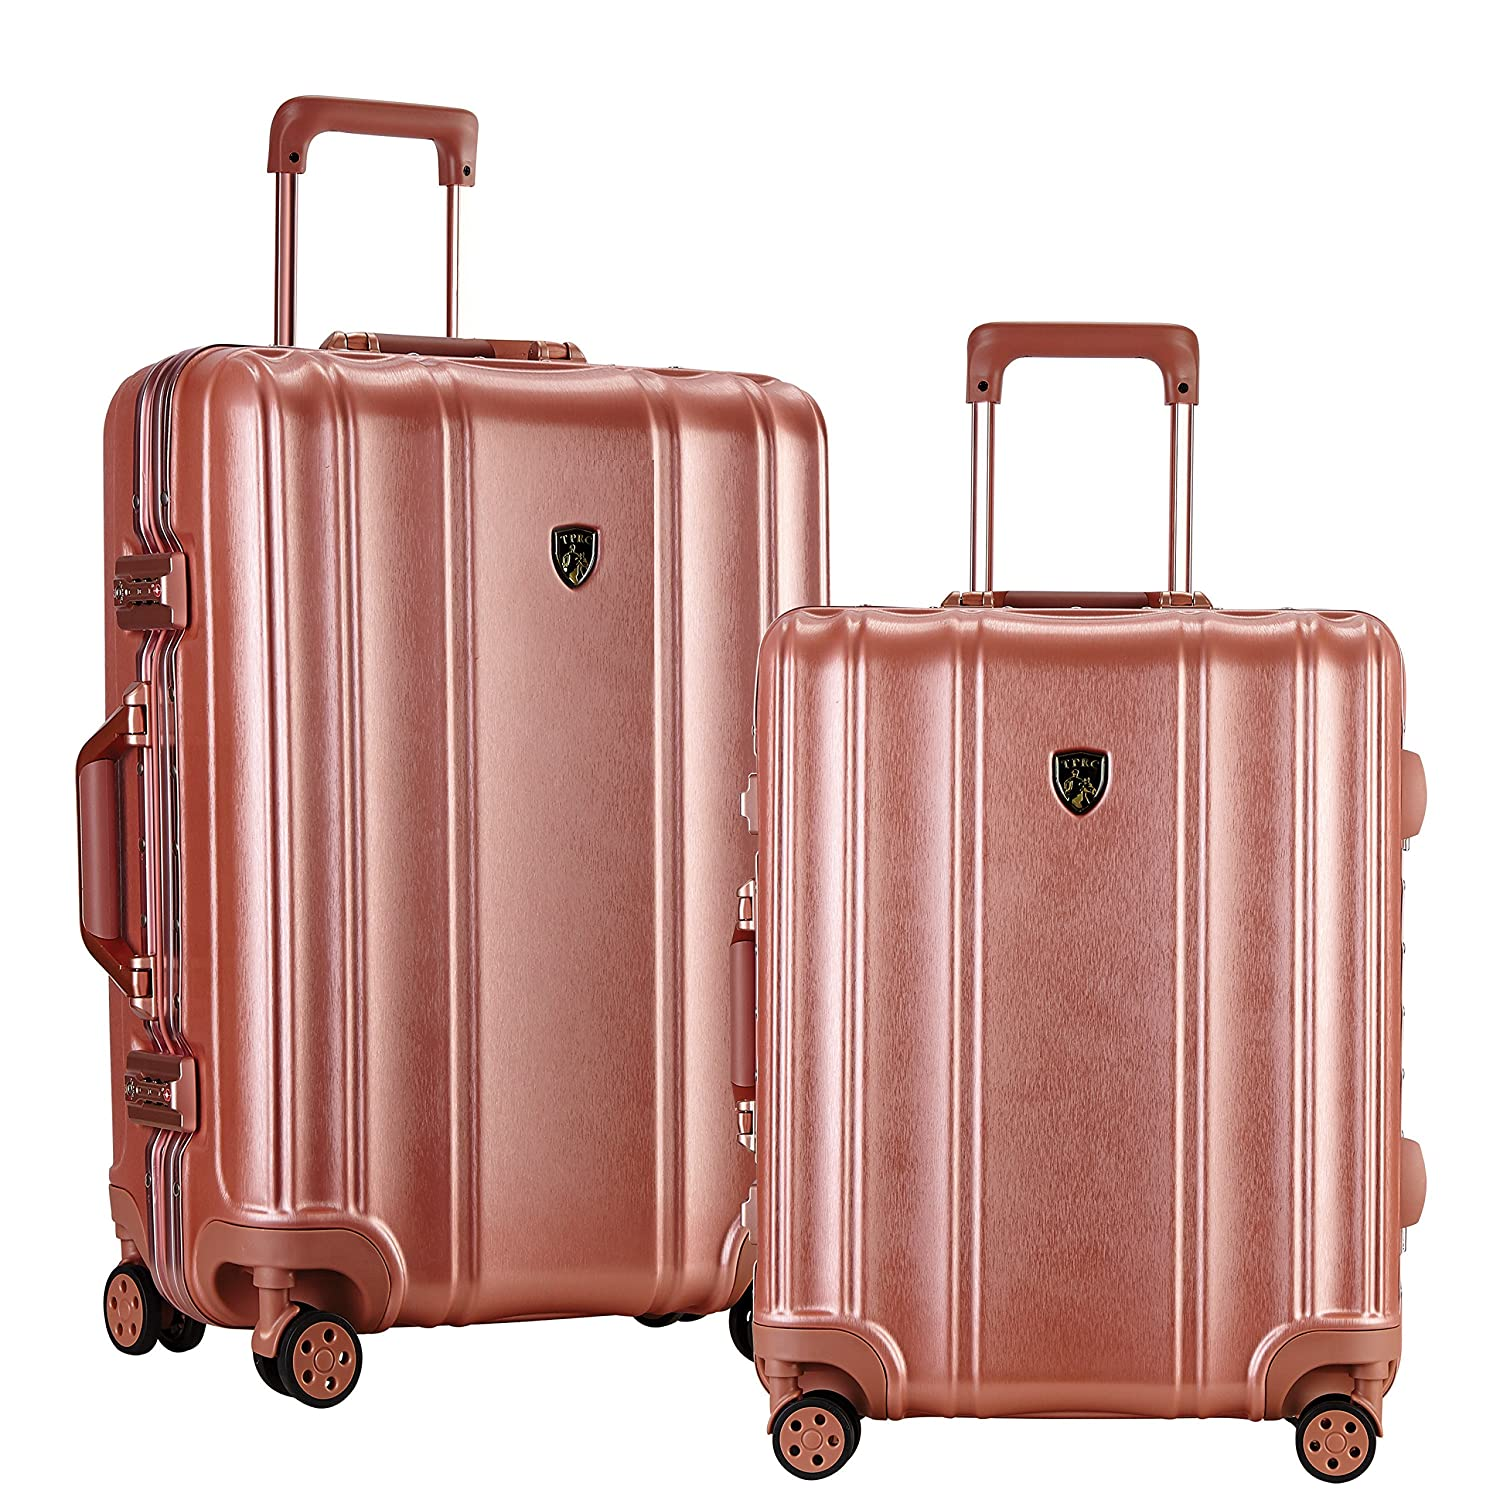 Color-Coordinated Accented Luggage with Dual TSA Locks Includes 28 Suitcase and 20 Carry-On Luggage TPRC 2 Piece Donna Collection Surdy Aluminum Frame Rose Color Option Travelers Club Luggage HS-38102-RG WIDE-BODY